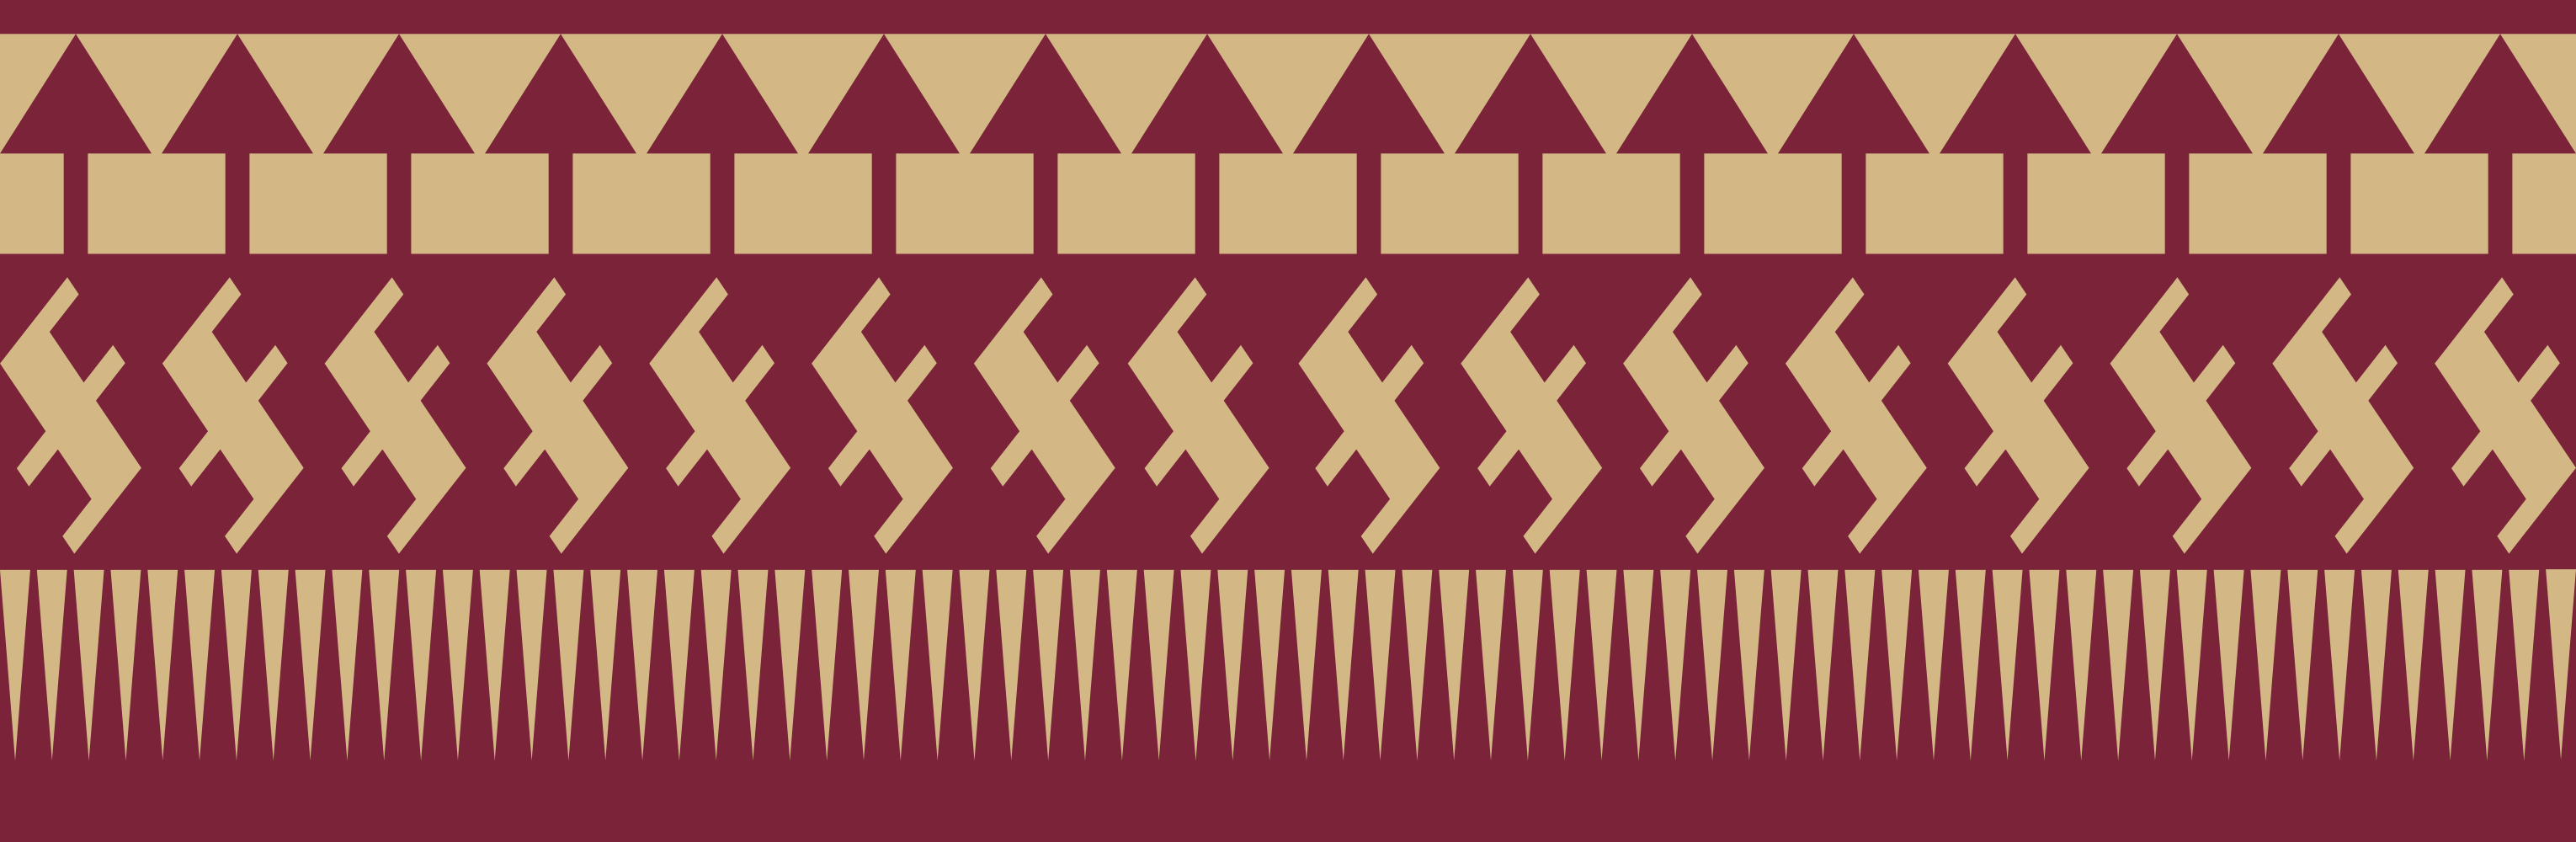 Florida State Seminoles Logo Vector I traced up the new fsu spear 3060x1000